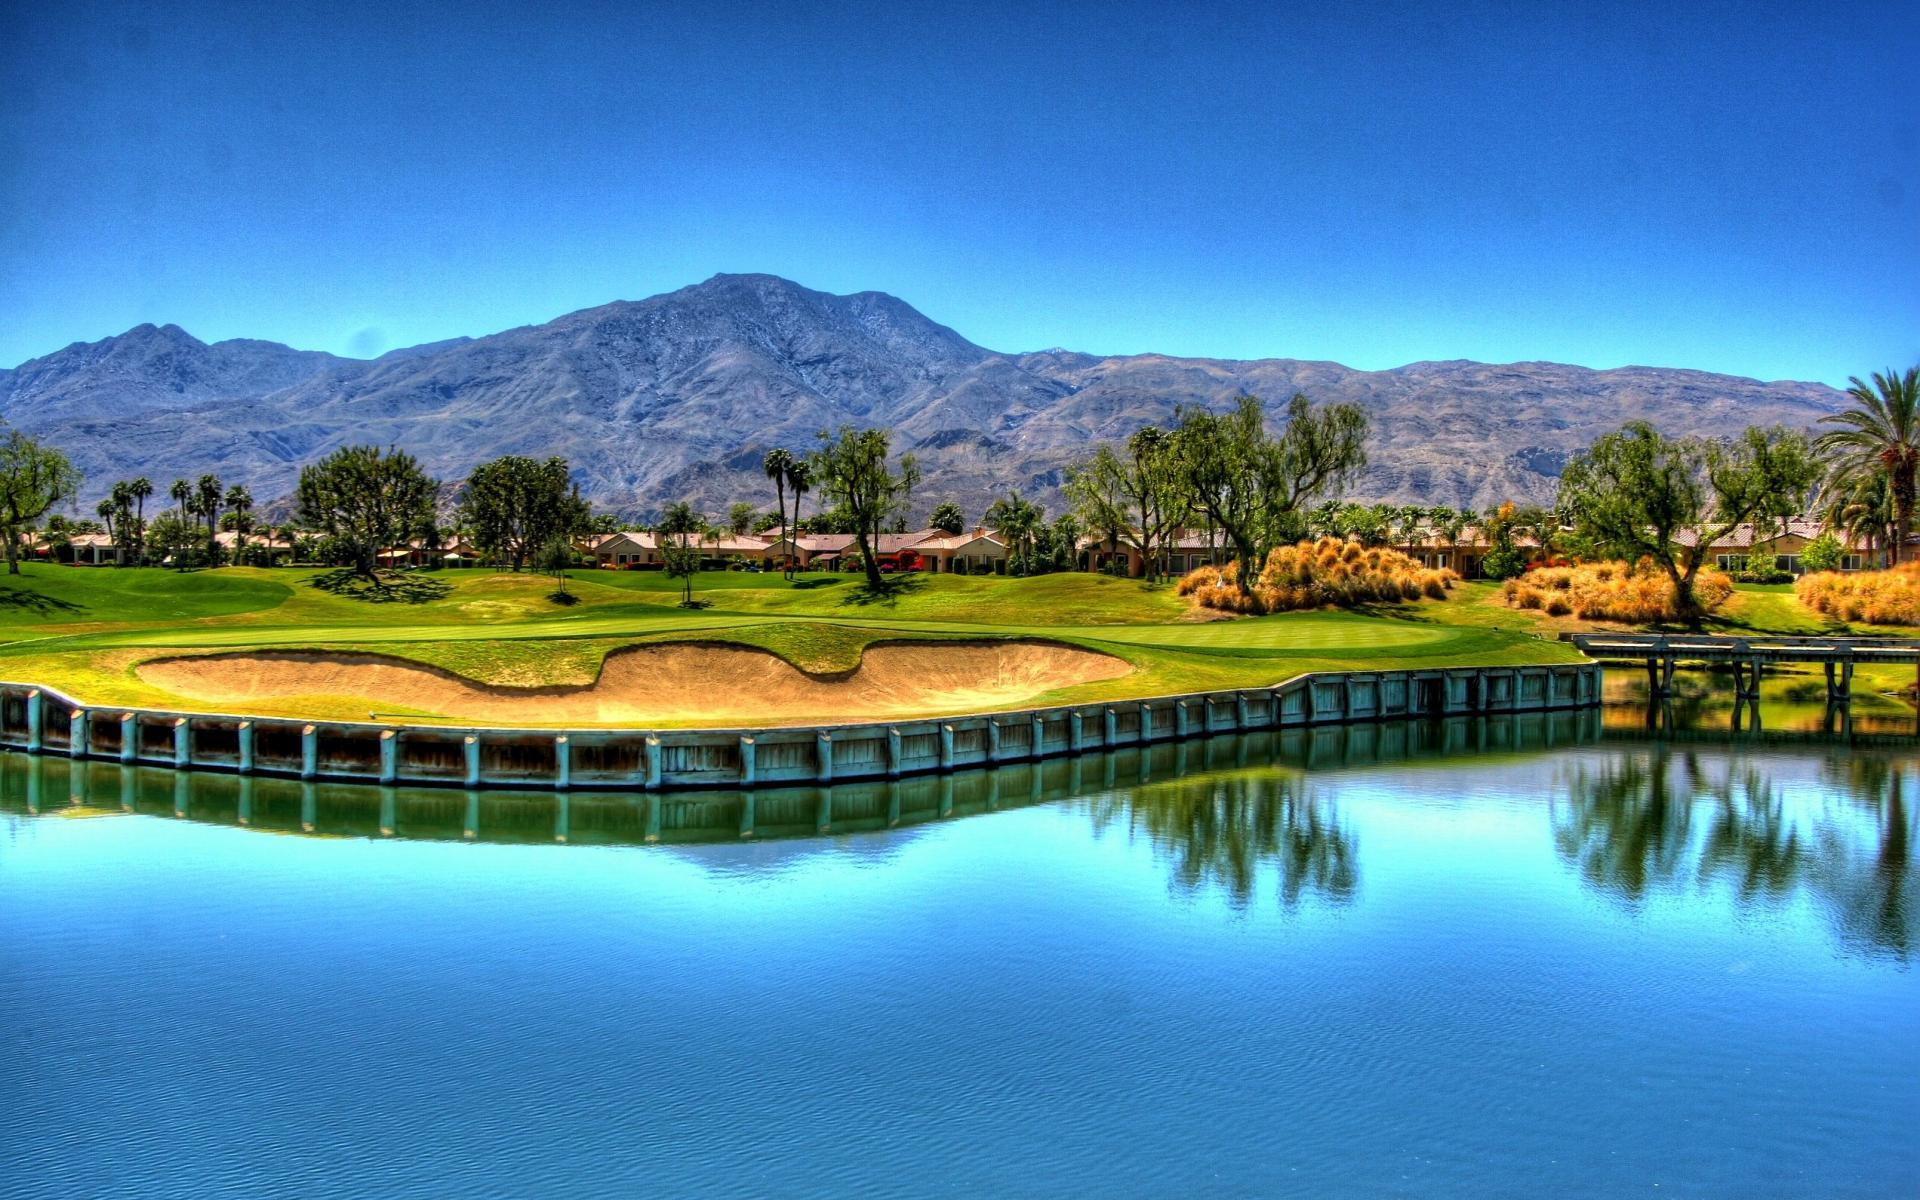 golf courses backgrounds